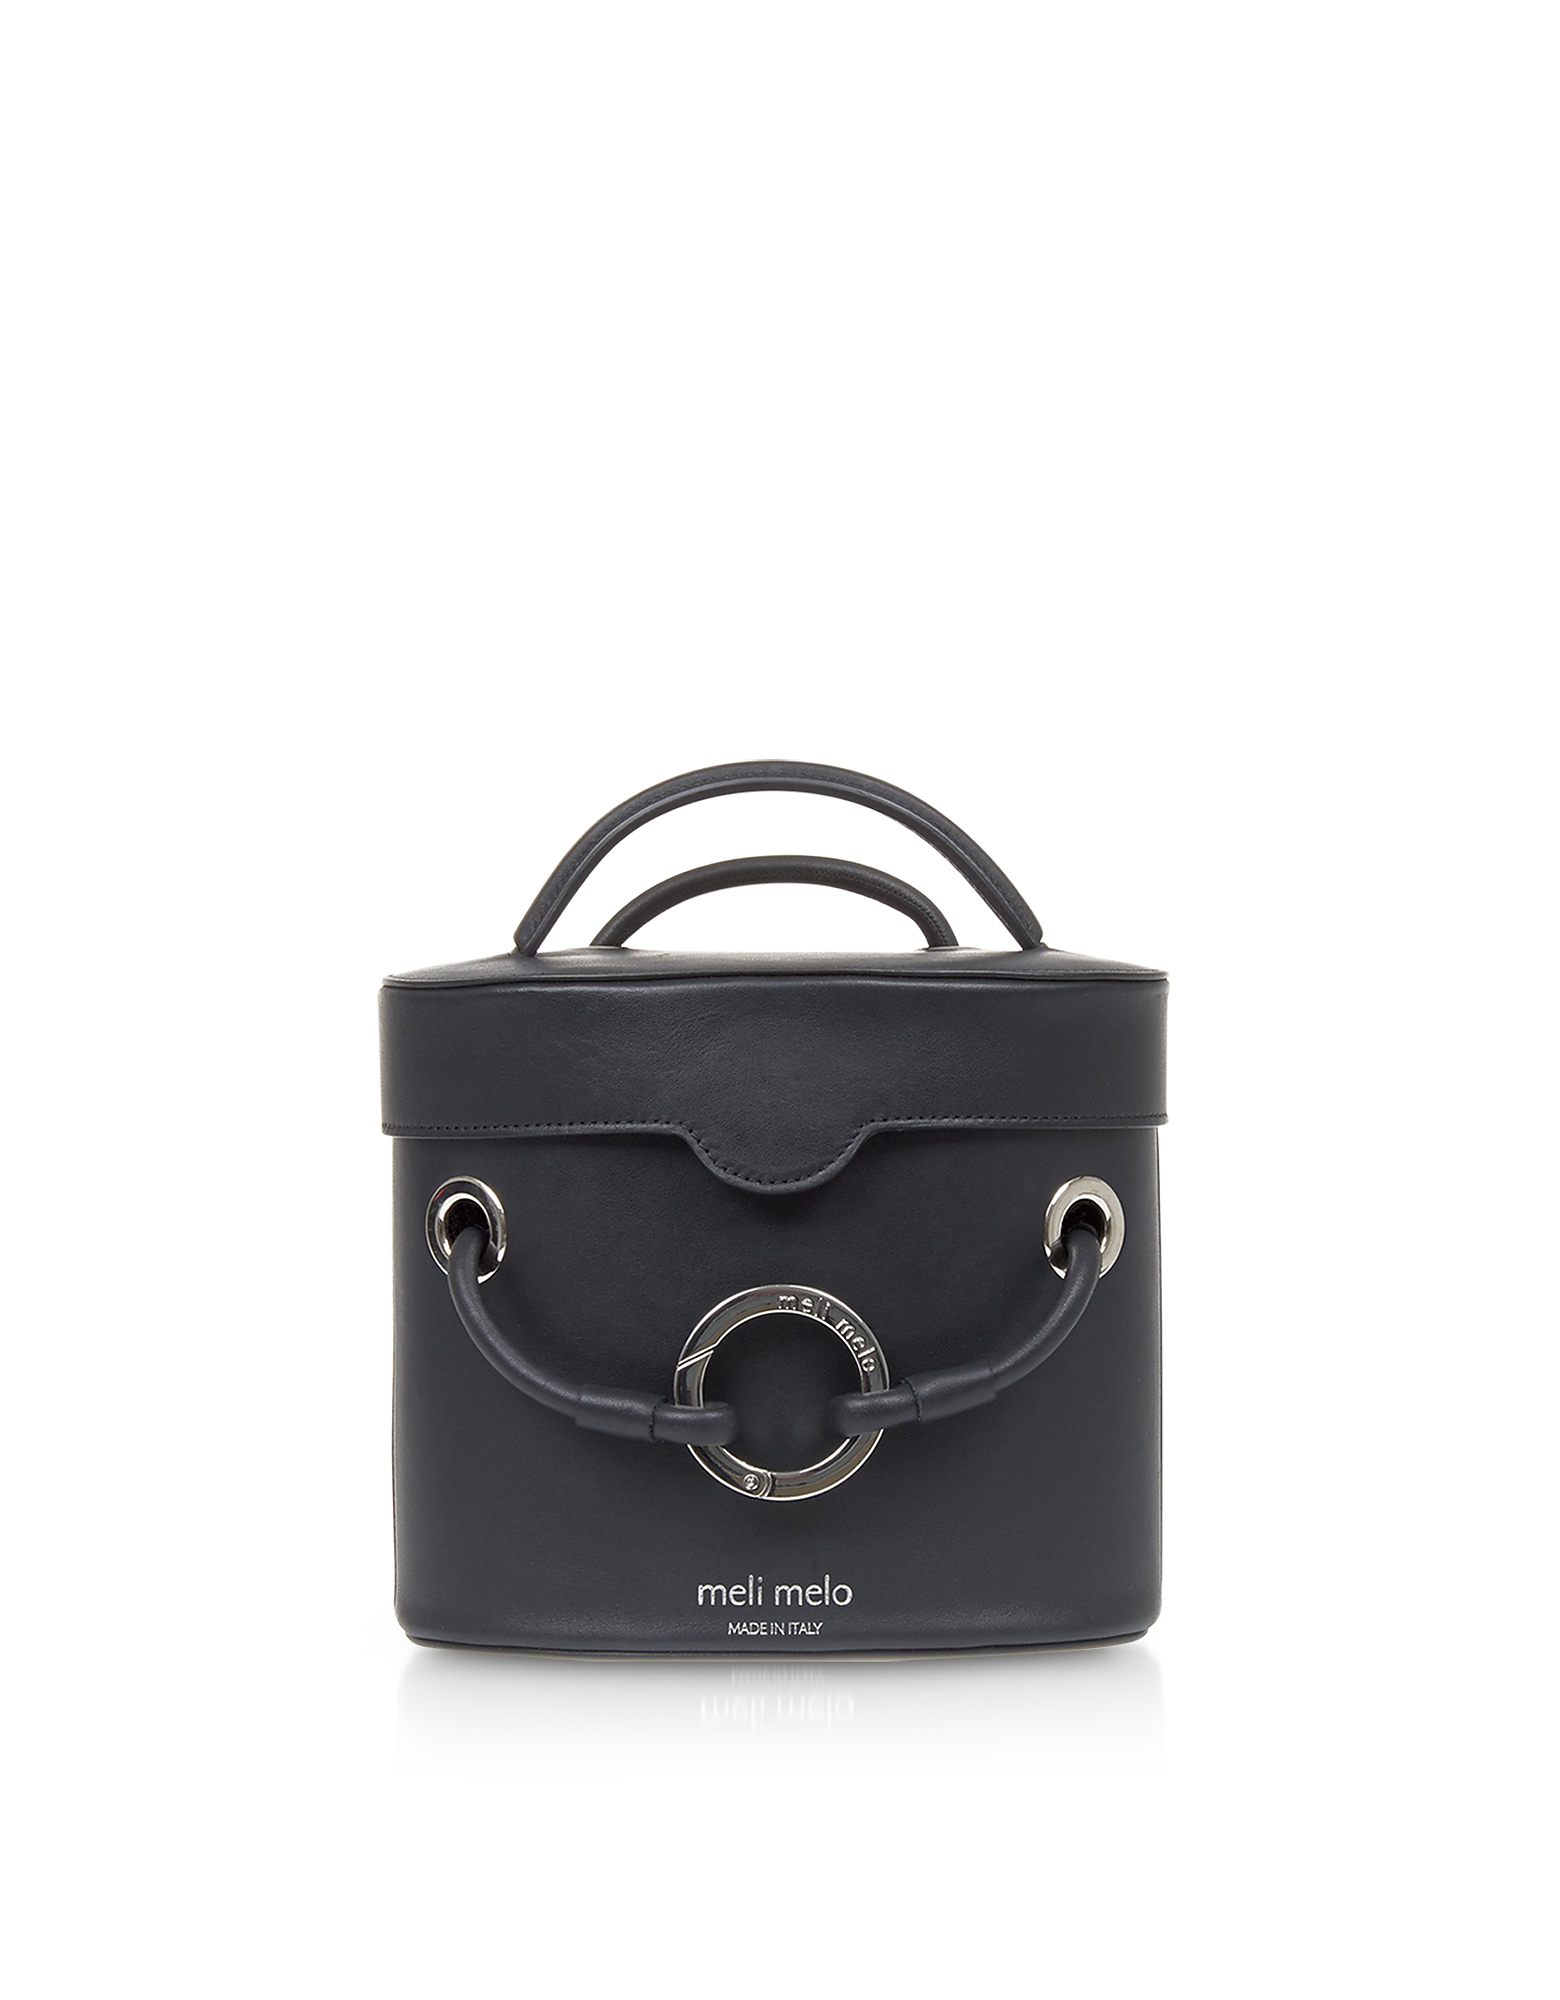 Meli Melo Handbags, Nancy Black Leather Cylindrical Bag